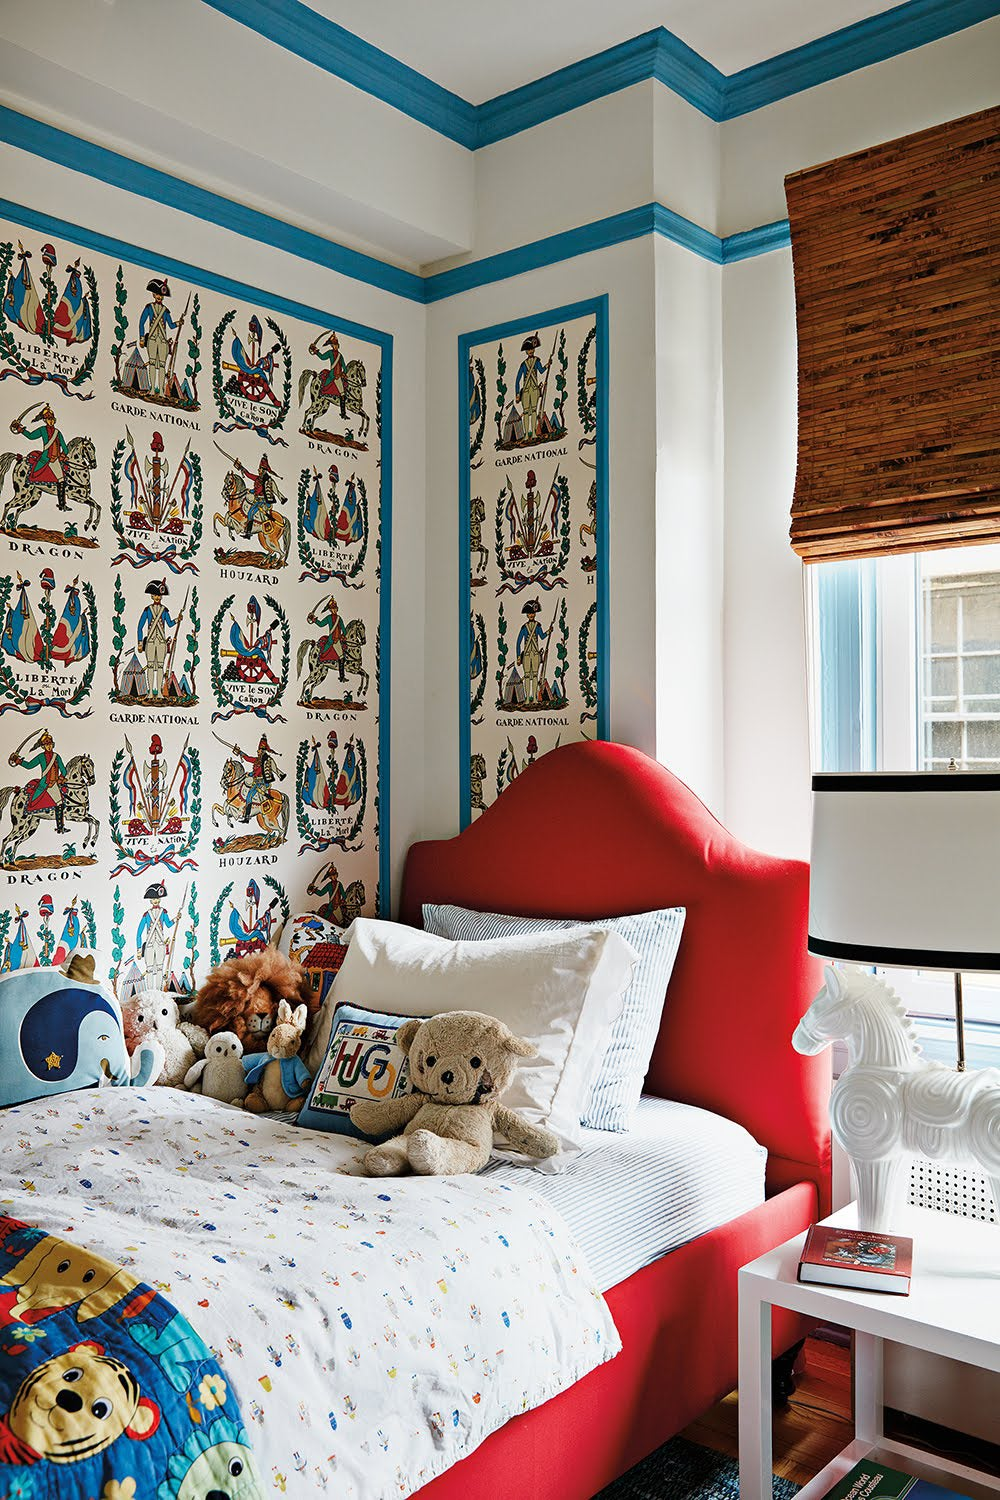 8 Kids' Room Ideas Far Bigger Than the Spaces They Live In